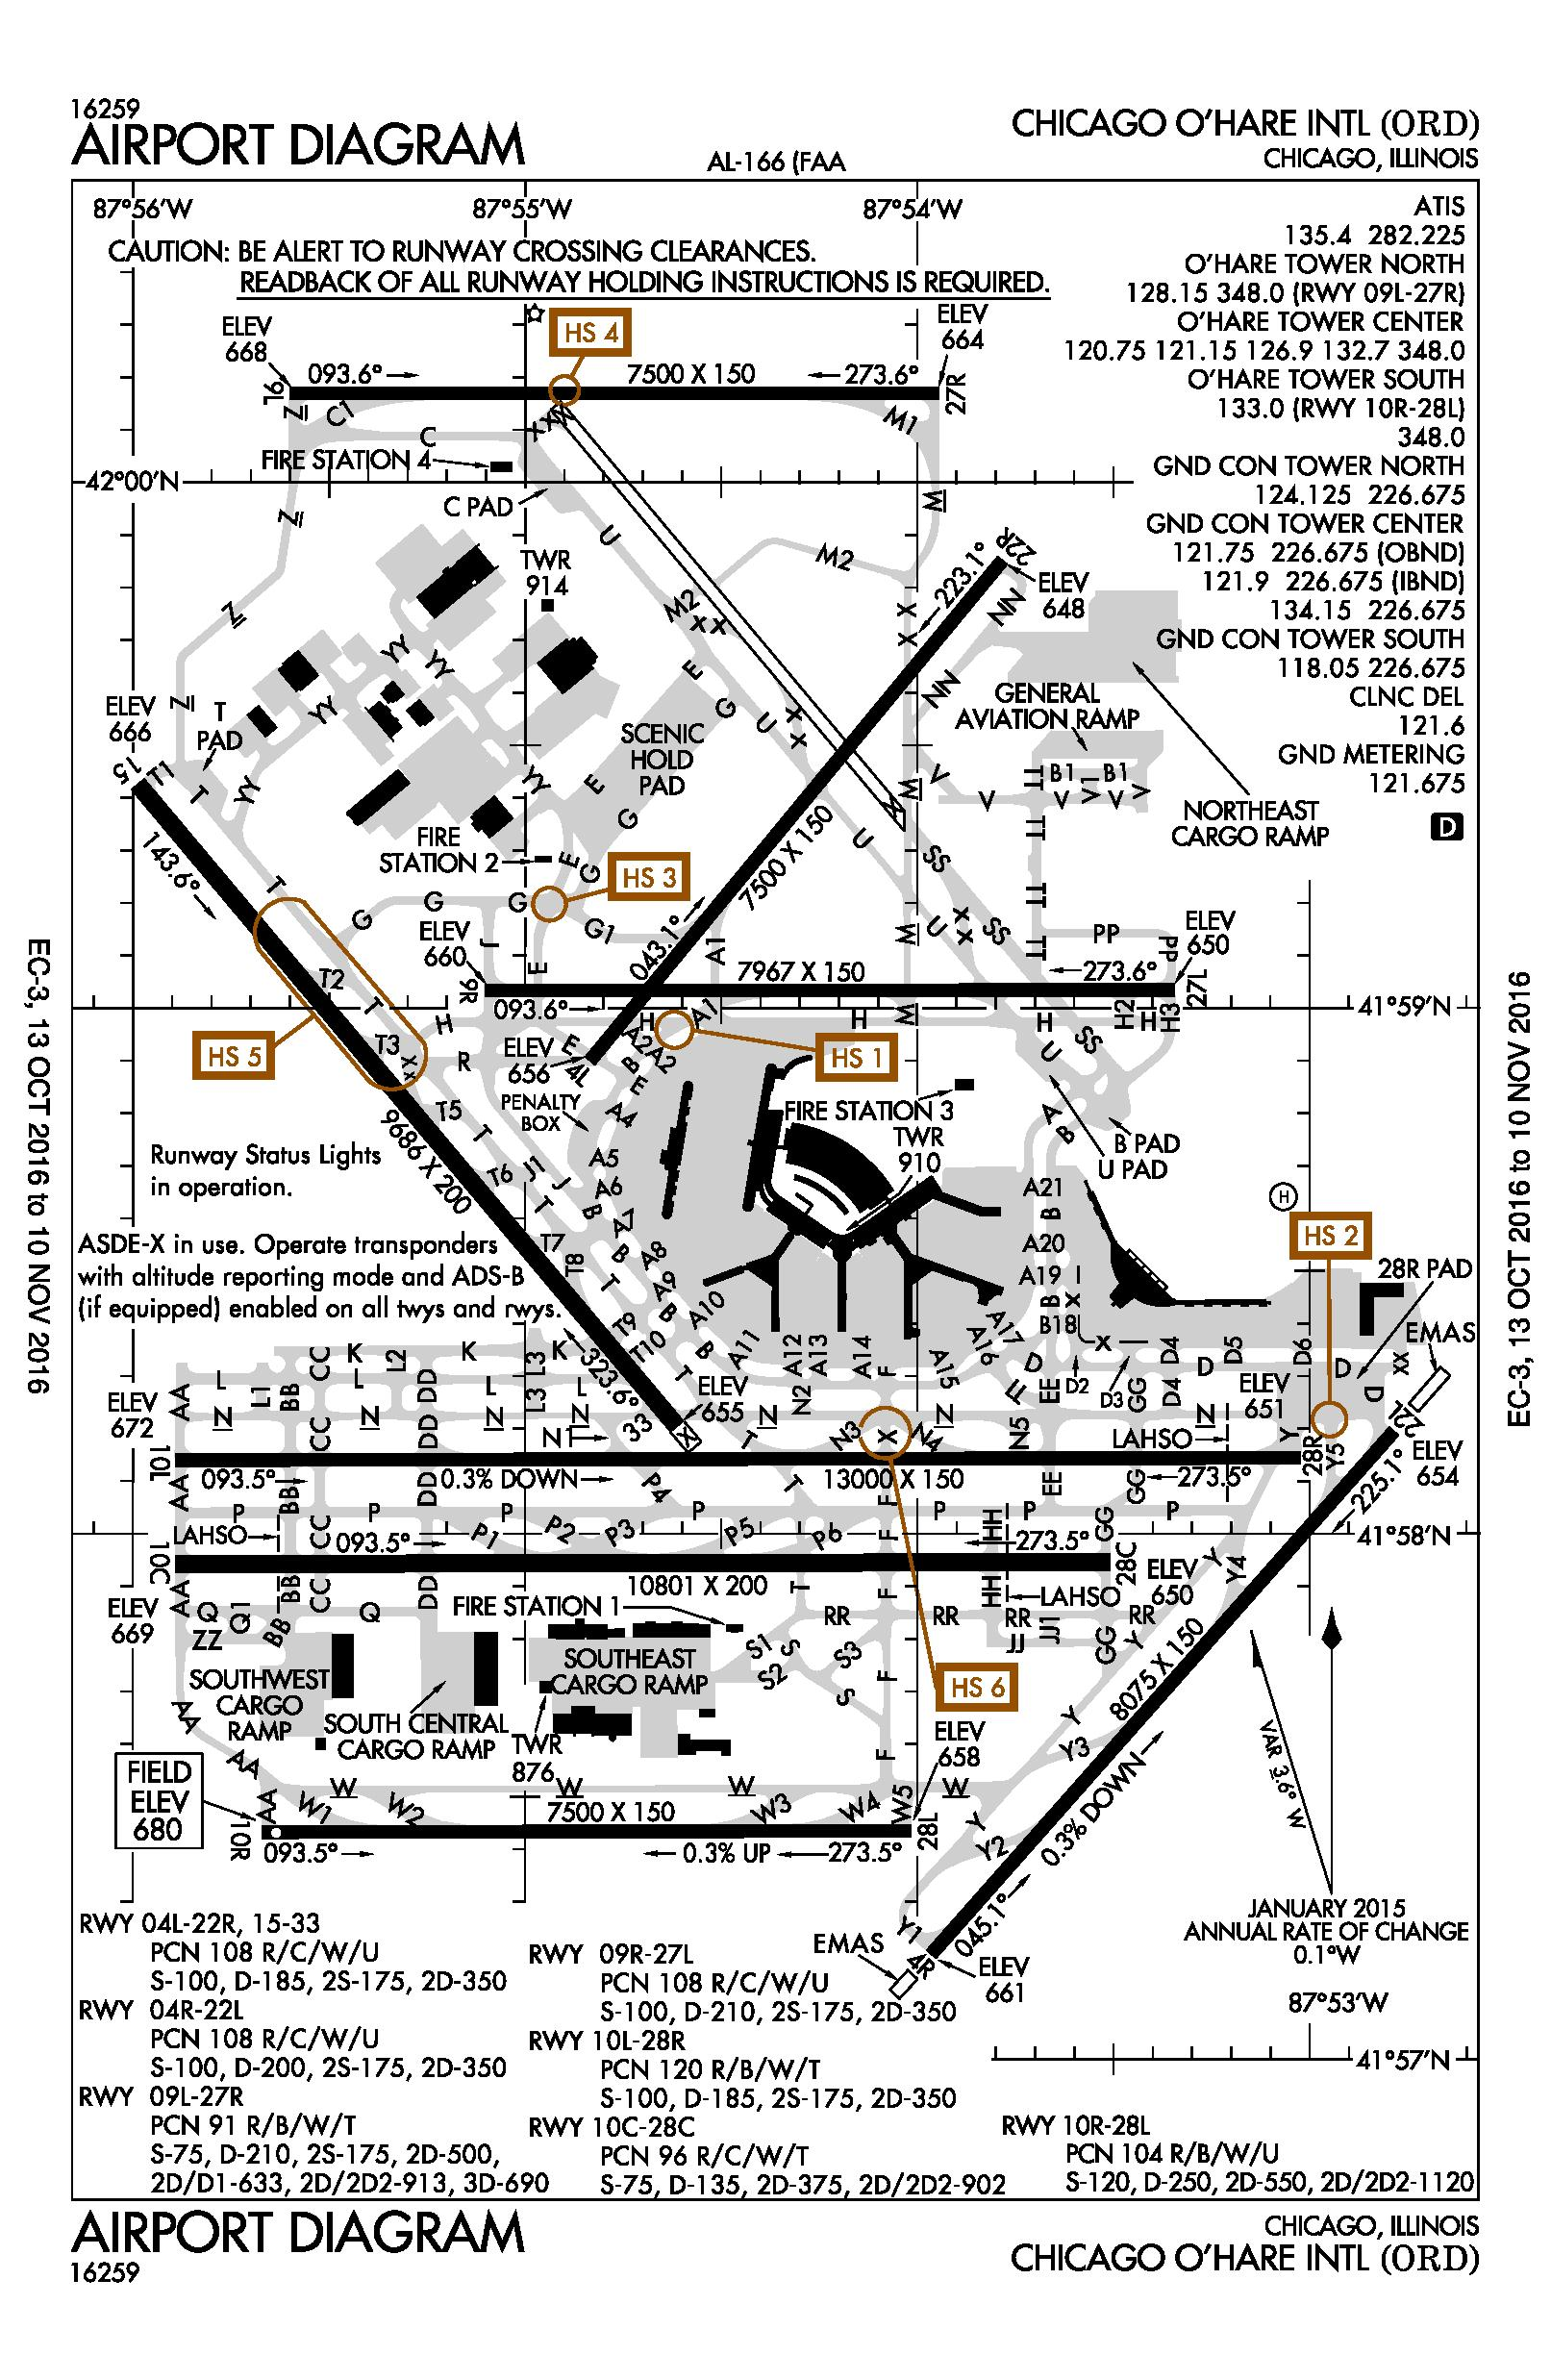 File:FAA O'Hare Diagram.jpg - Wikimedia Commons on printable map of aurora, printable map of biddeford pool, printable map of downtown nashville, map of chicago o'hare international airport, printable map of atlanta airport, printable map of burbank, printable map of little italy nyc, printable map of laguardia airport, map of o'hare intl airport, printable map of tinley park, printable map of downtown st. louis,